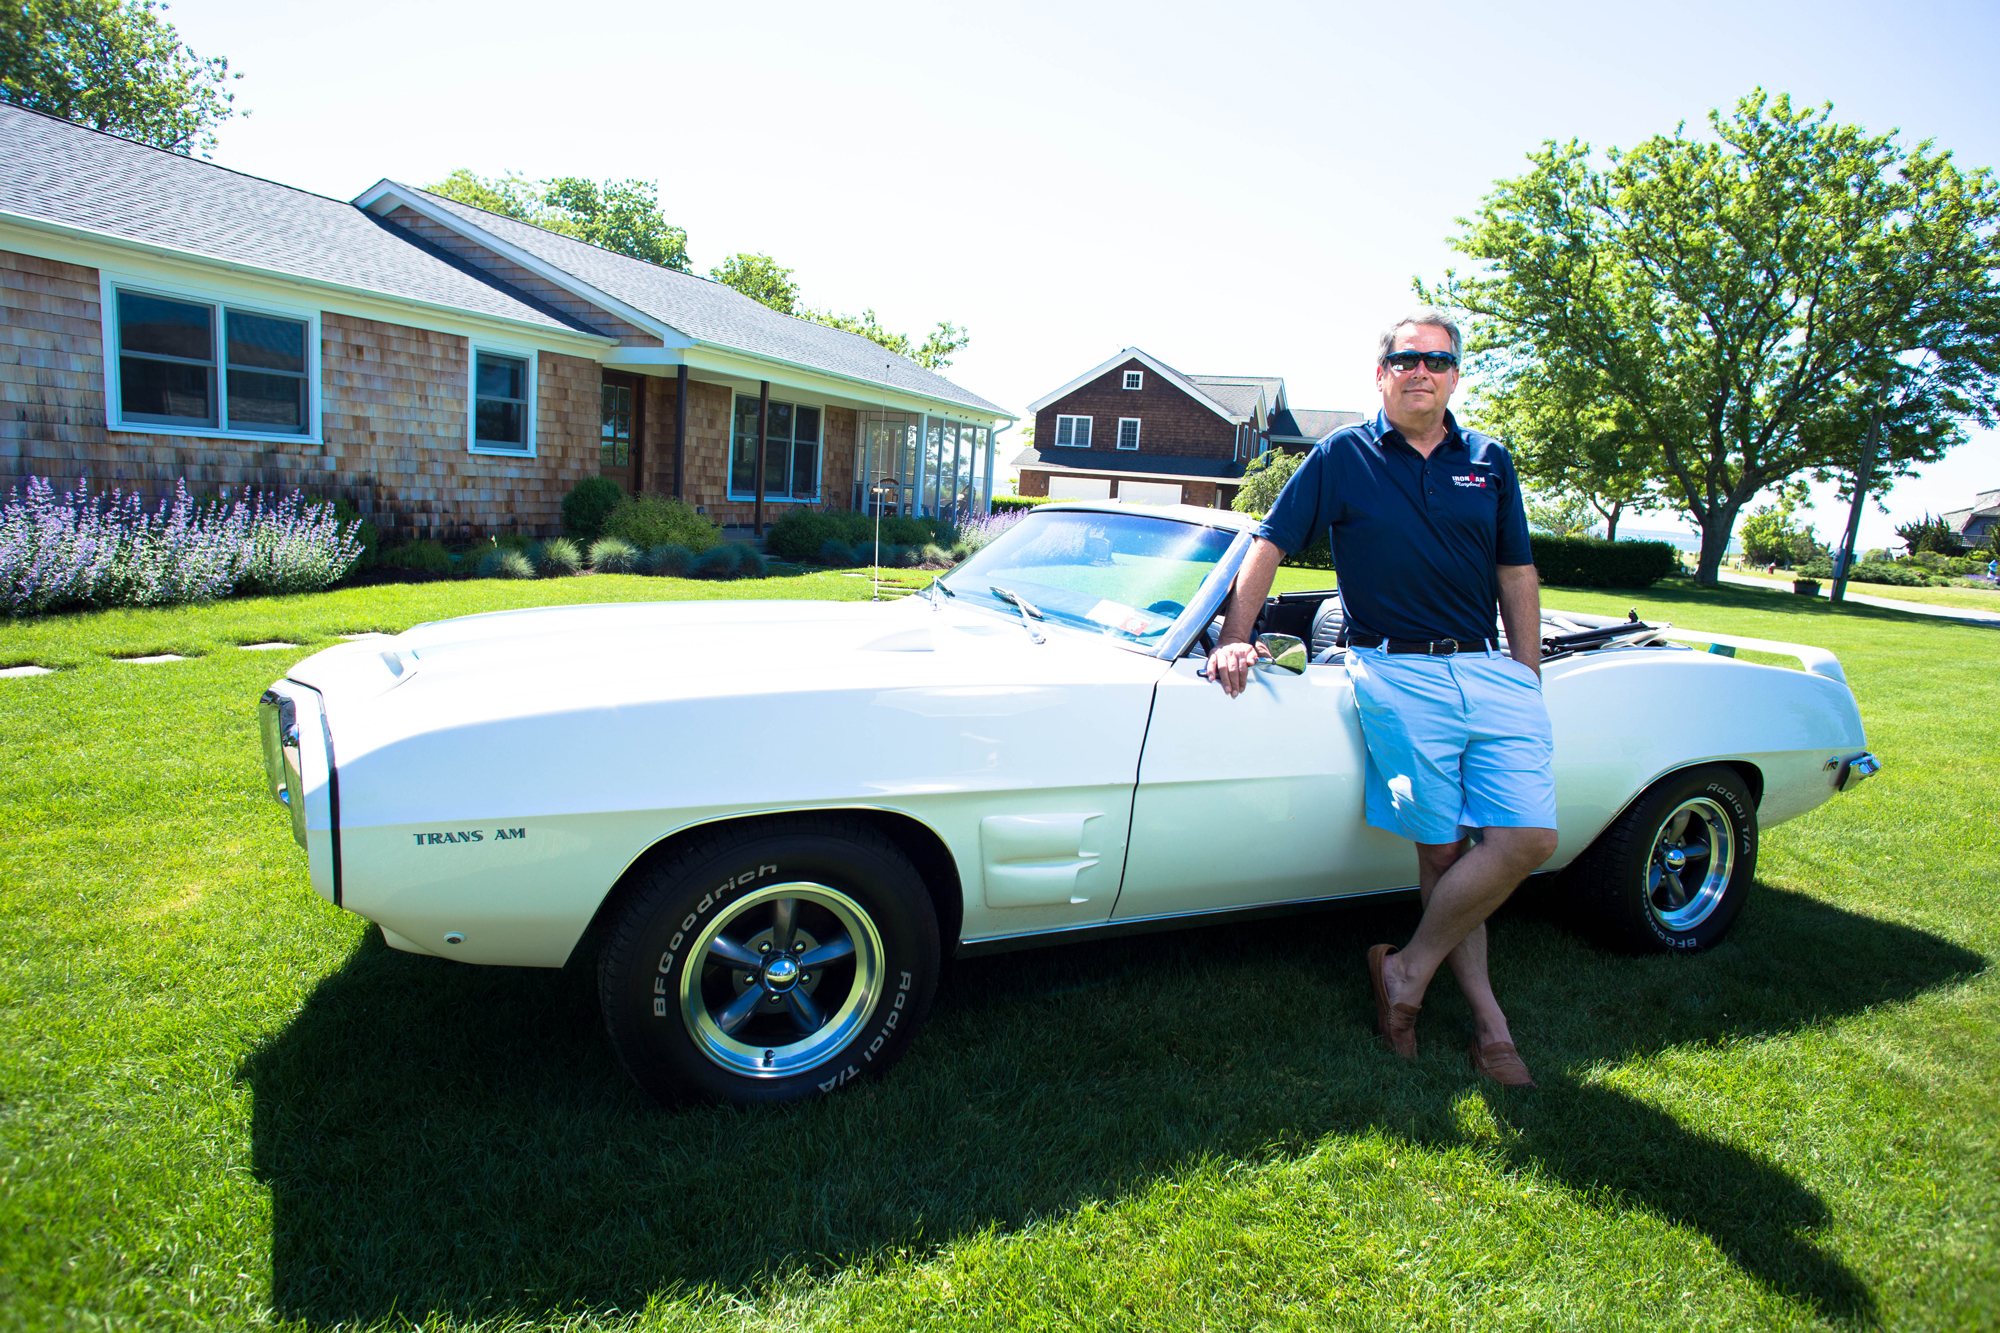 Kevin leaning against a white vintage car parked on grass with a house in the background.